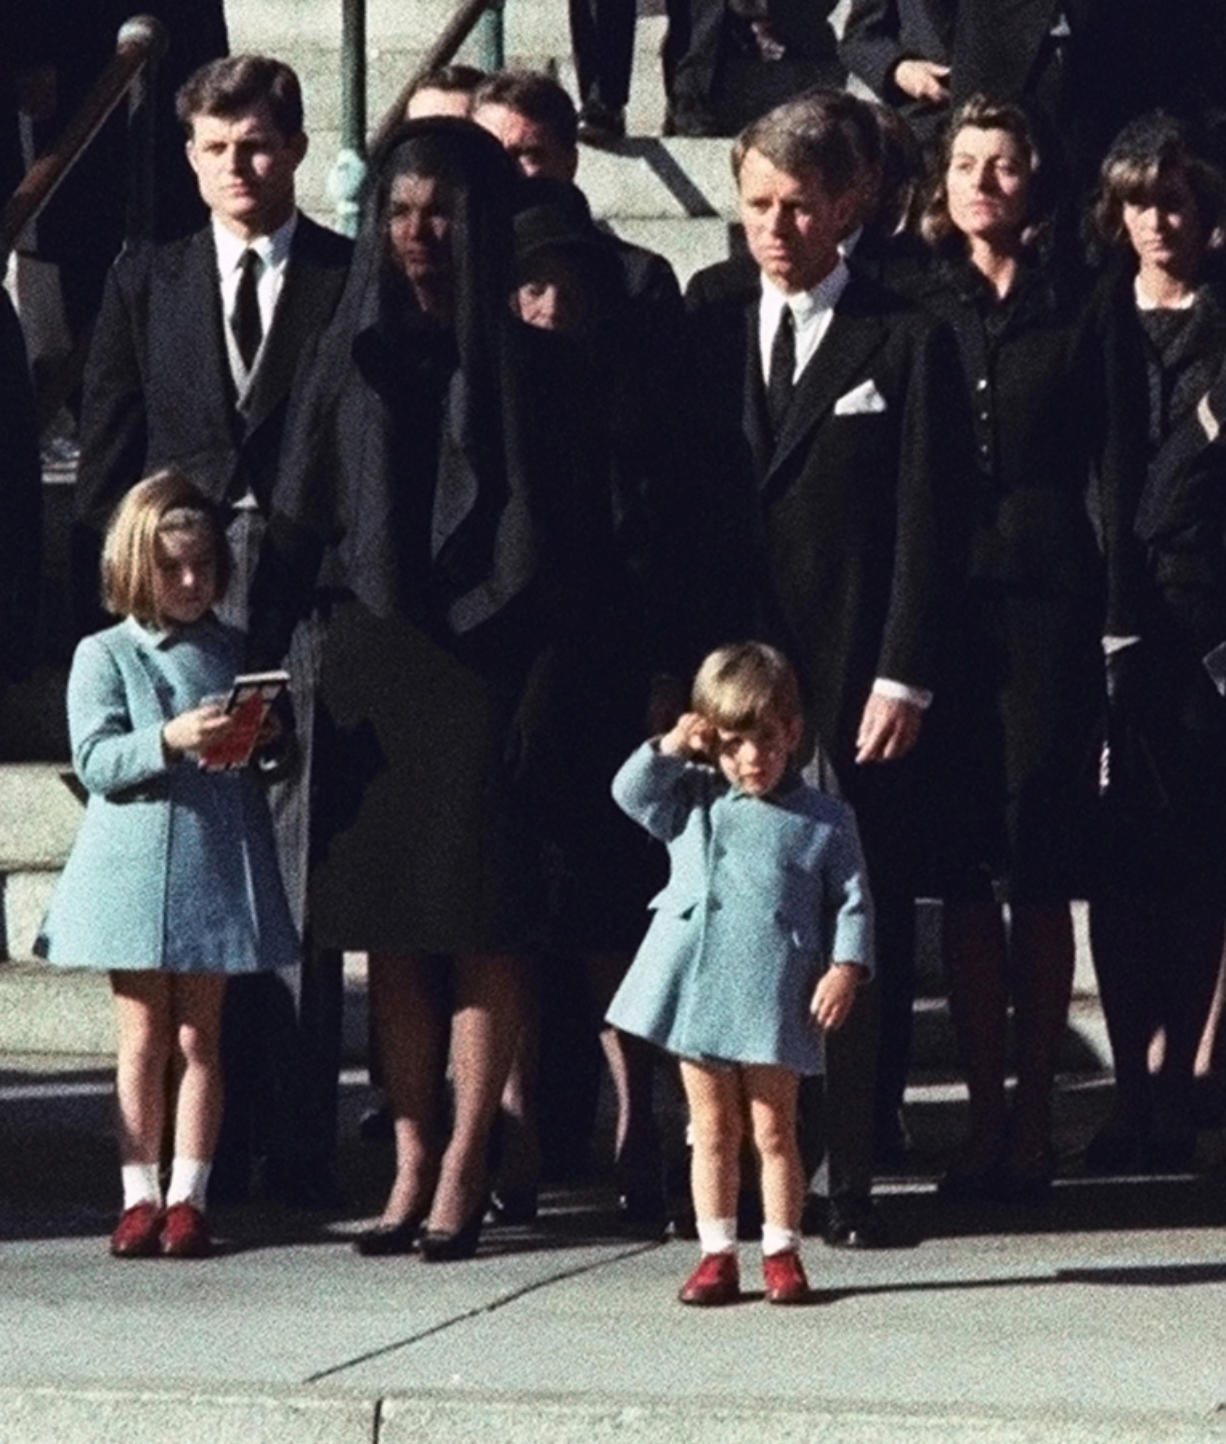 John F. Kennedy Jr., 3, salutes his father's casket Nov. 25, 1963 in Washington, three days after the president was assassinated in Dallas. Widow Jacqueline Kennedy, center, and daughter Caroline Kennedy are accompanied by the late president's brothers Sen. Edward Kennedy, left, and Attorney General Robert Kennedy. Associated Press files